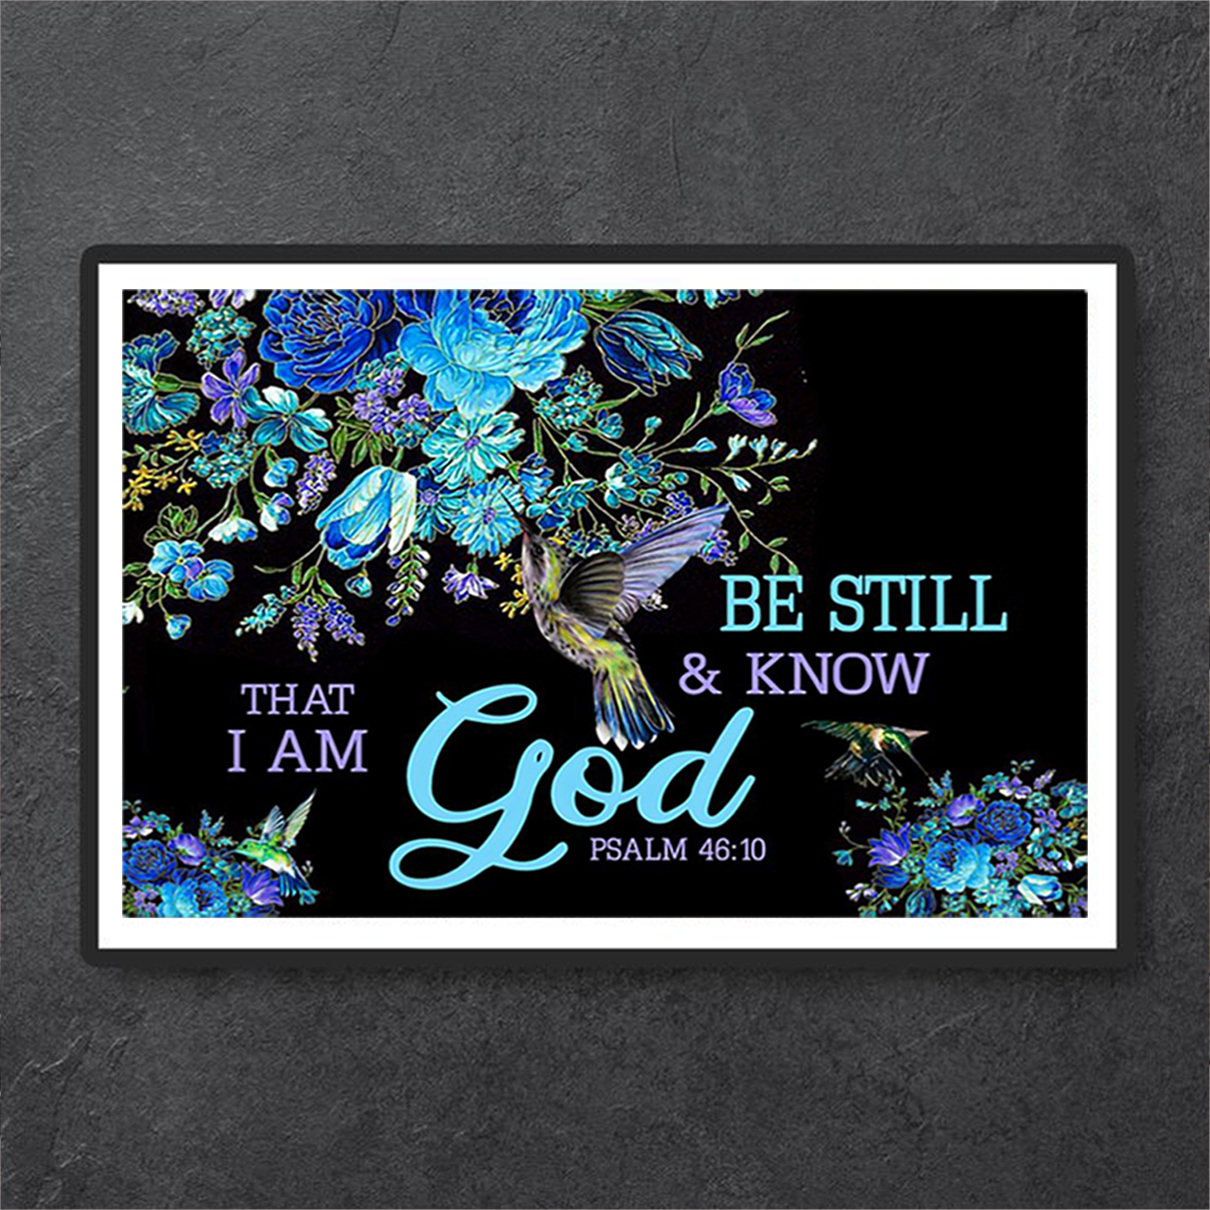 Be still and know that I am God psalm 4610 poster A3